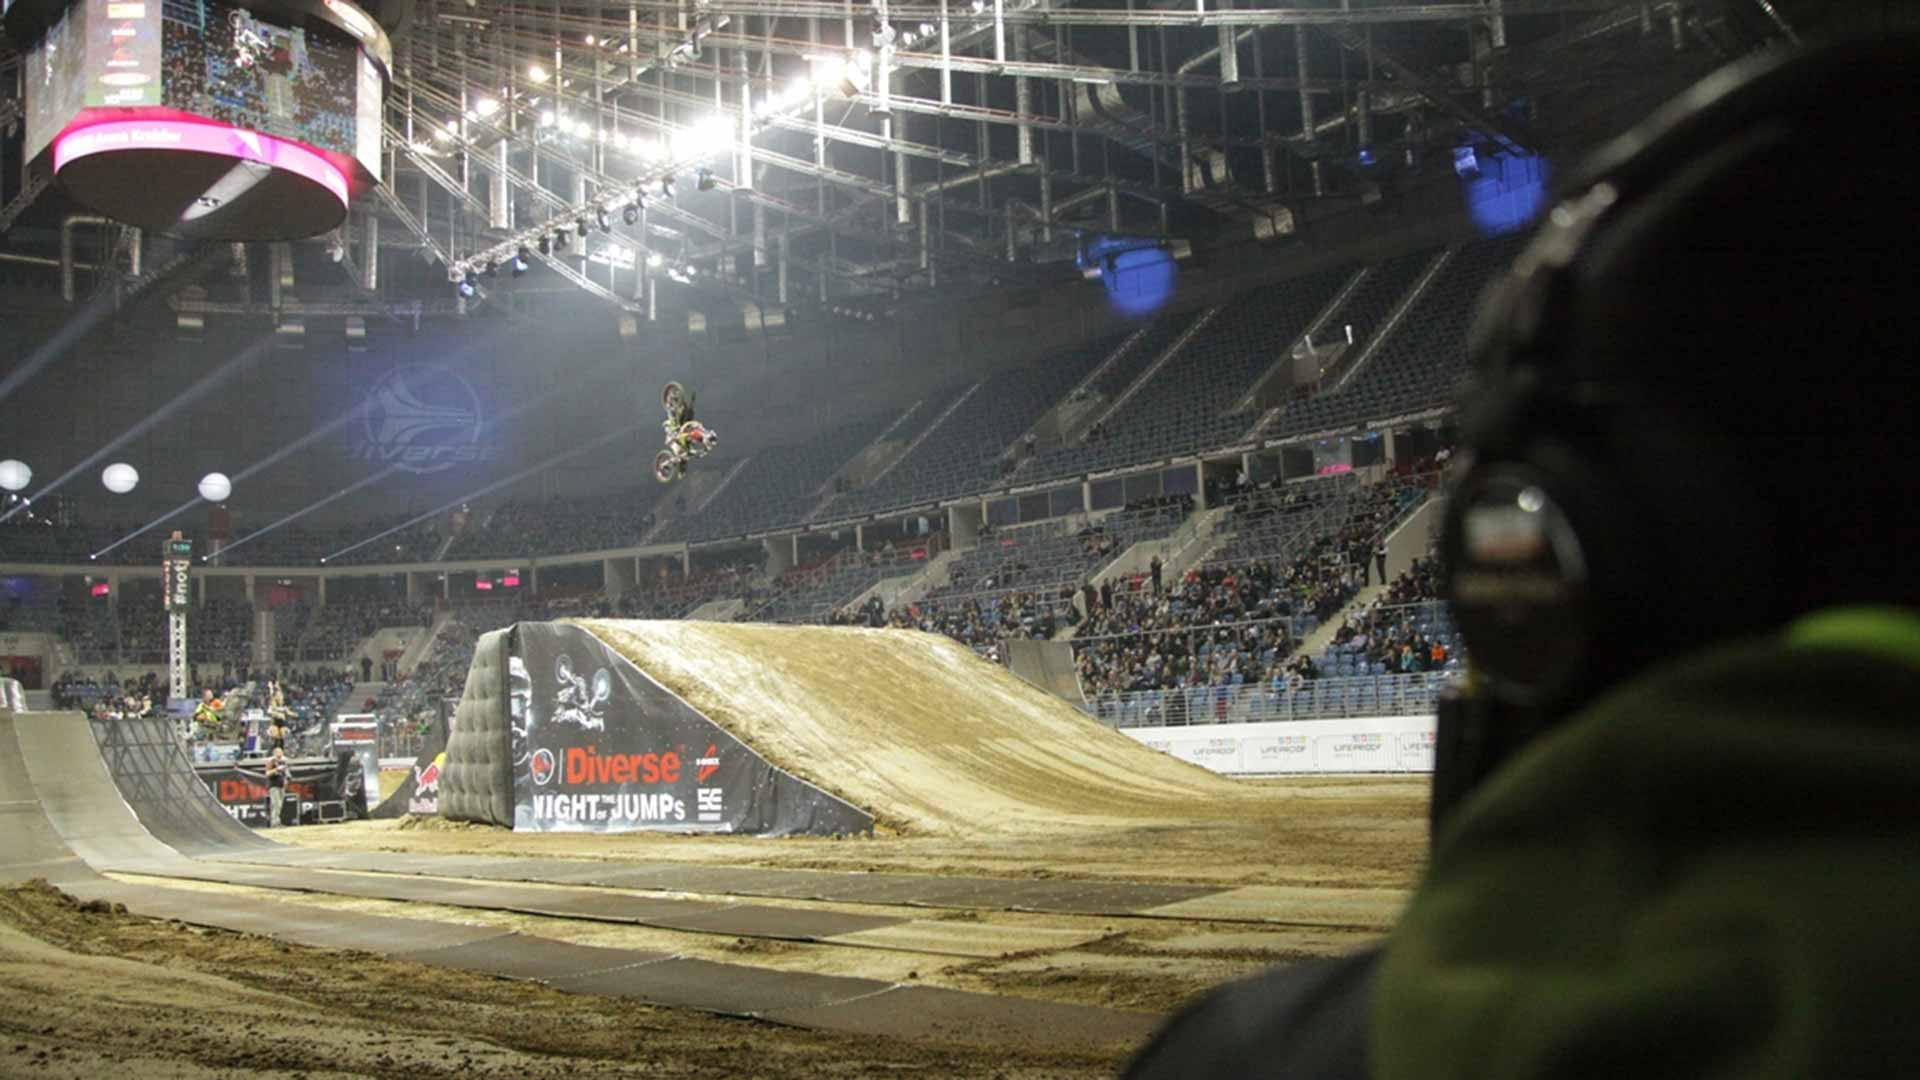 Mistrzostwa-Świata-NIGHT-of-the-JUMPs-_Ergo-Arena